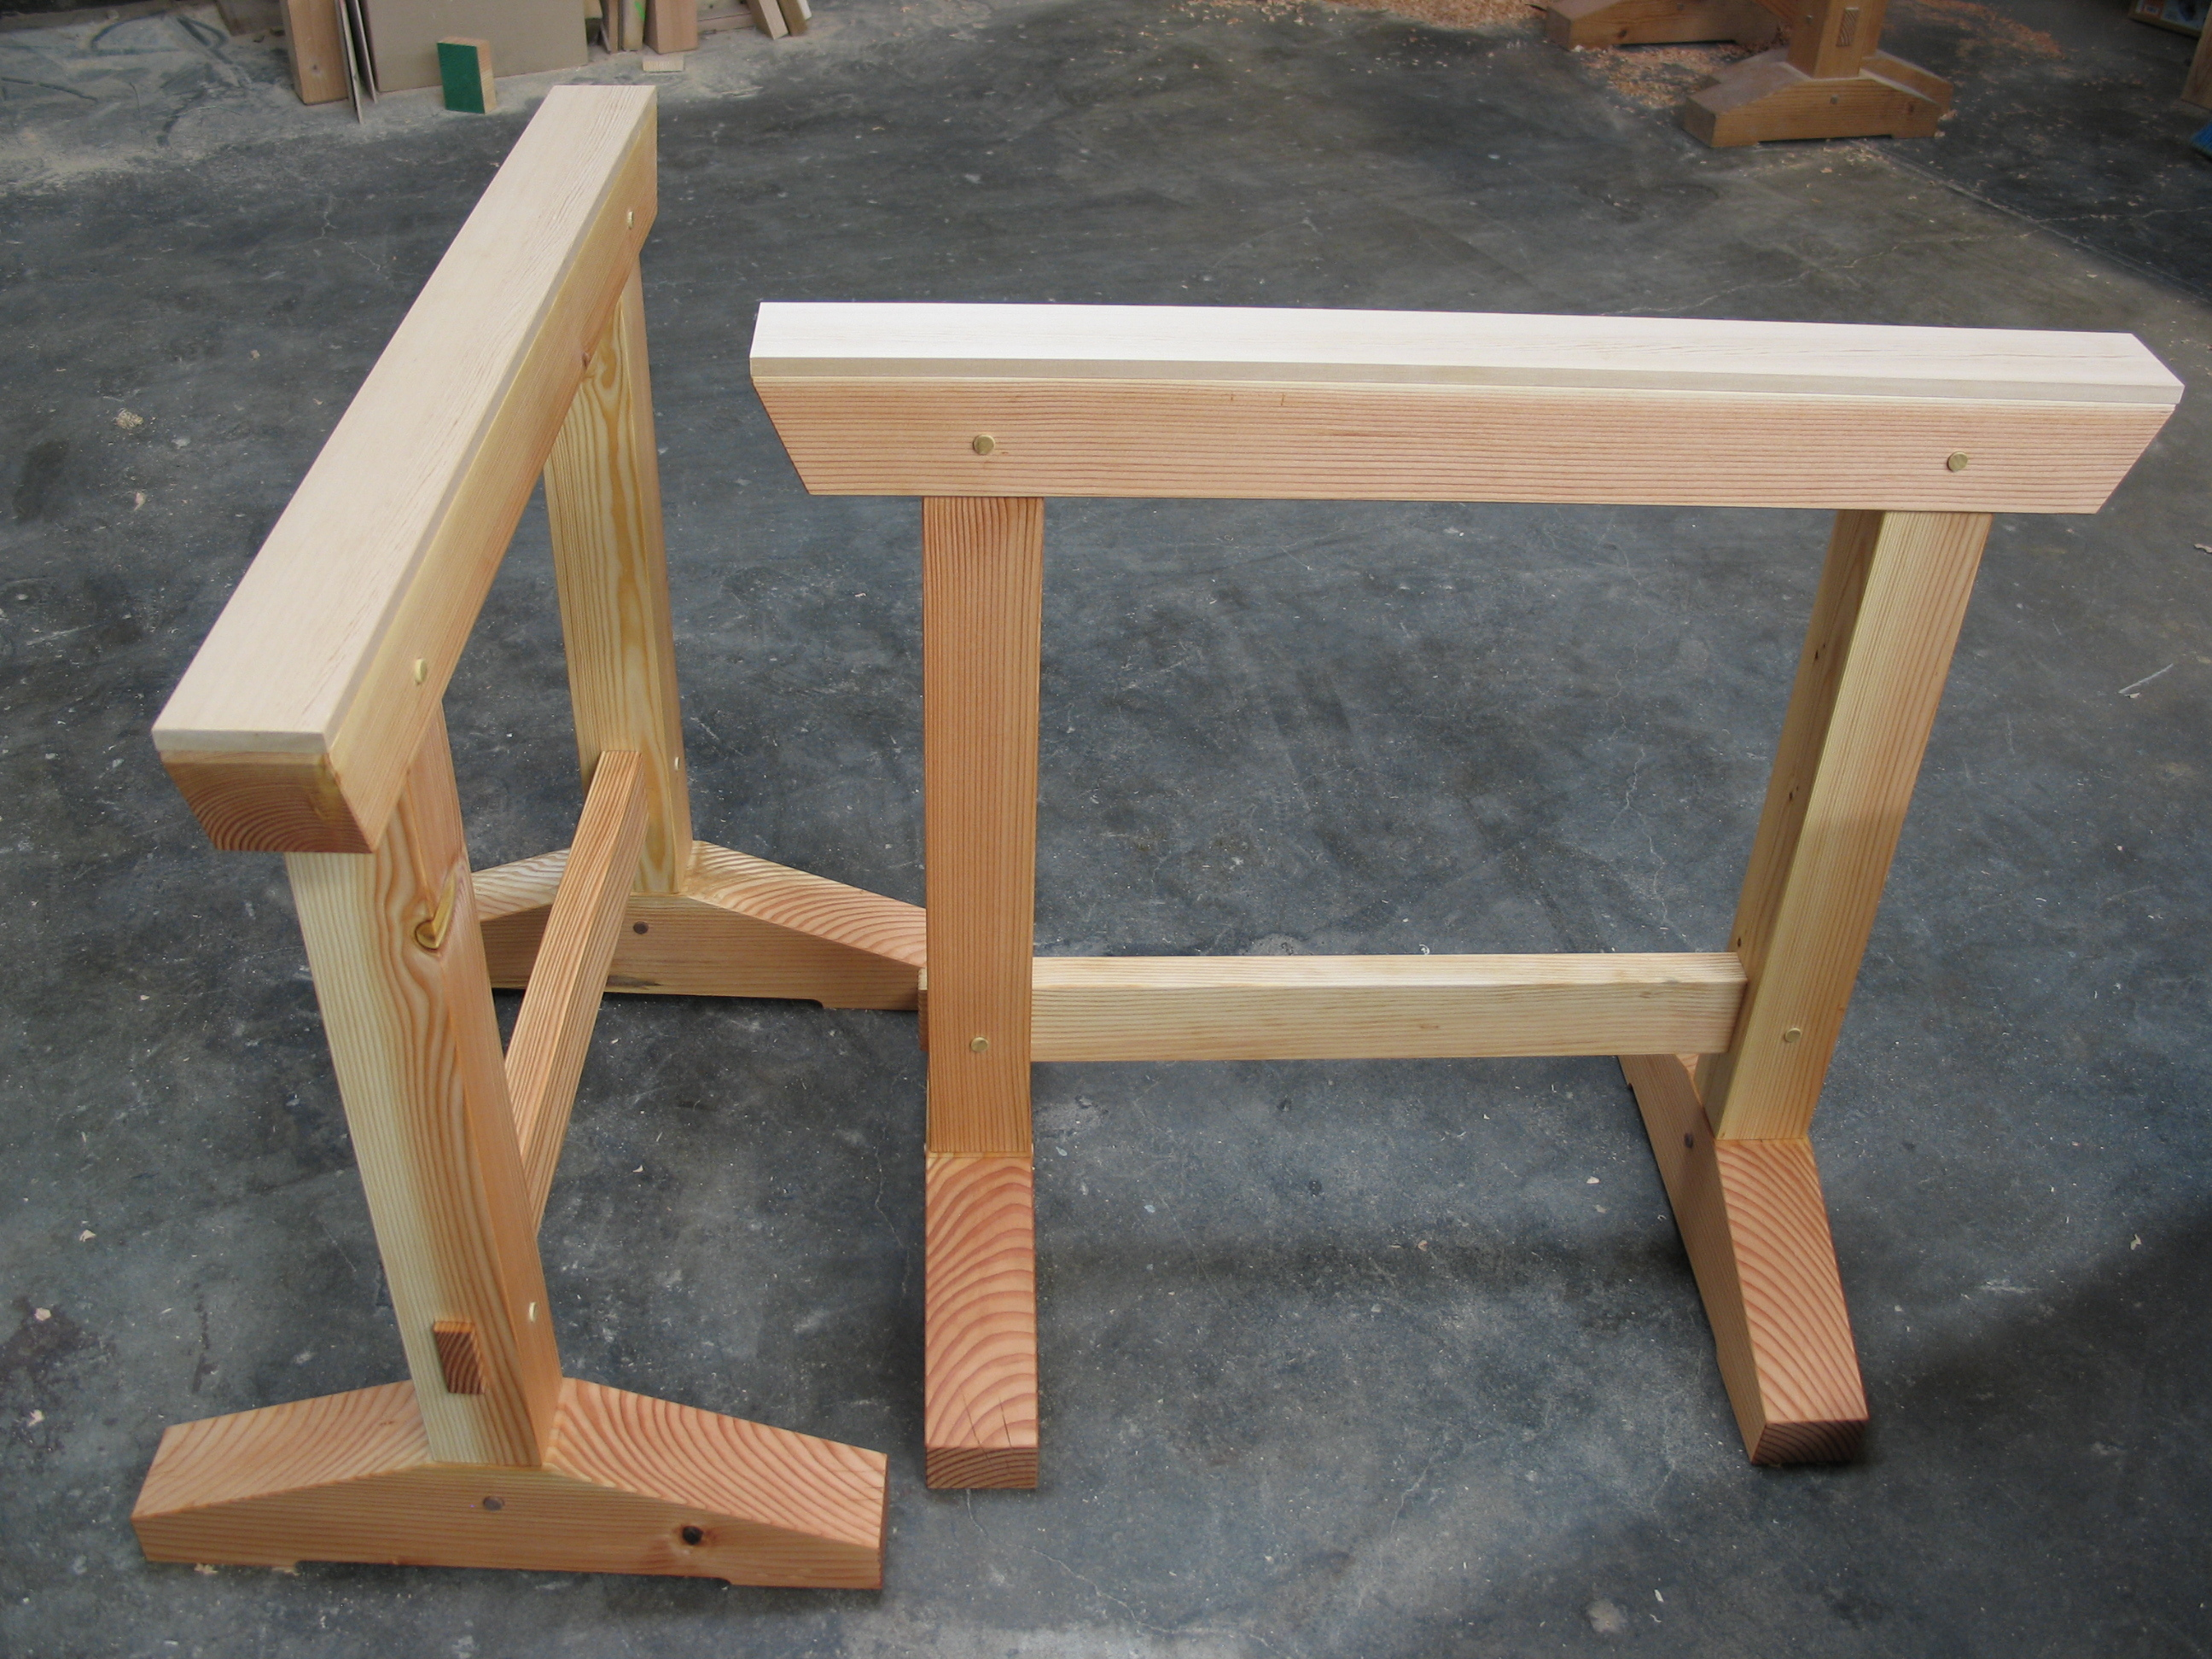 Build These Shop Horses With Simple Joinery Make